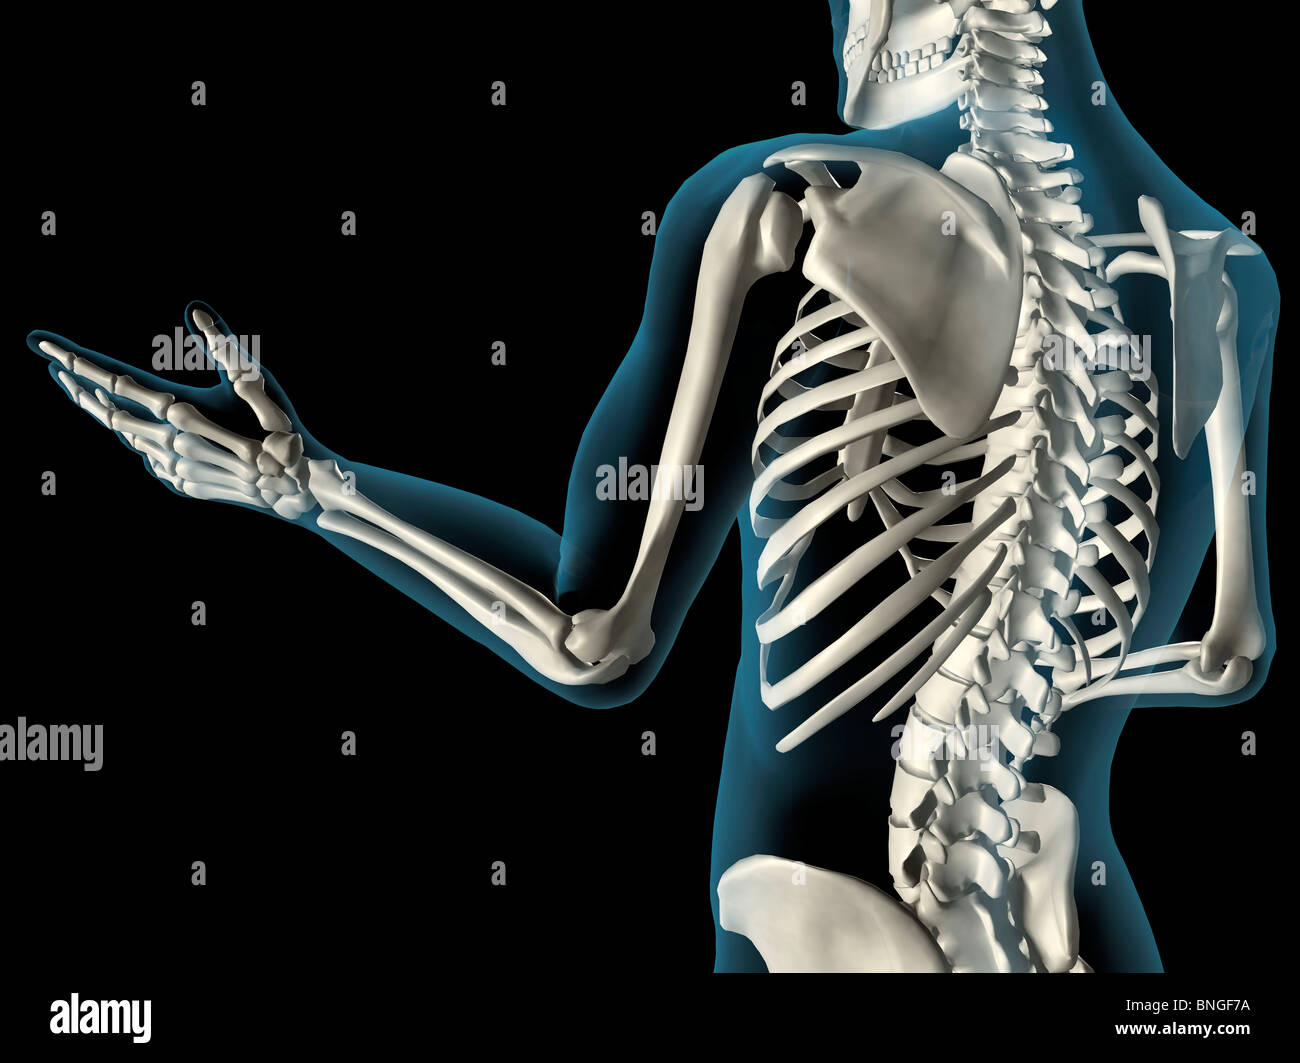 X-ray view of elbow bones in a see-through arm with hand and spinal ...